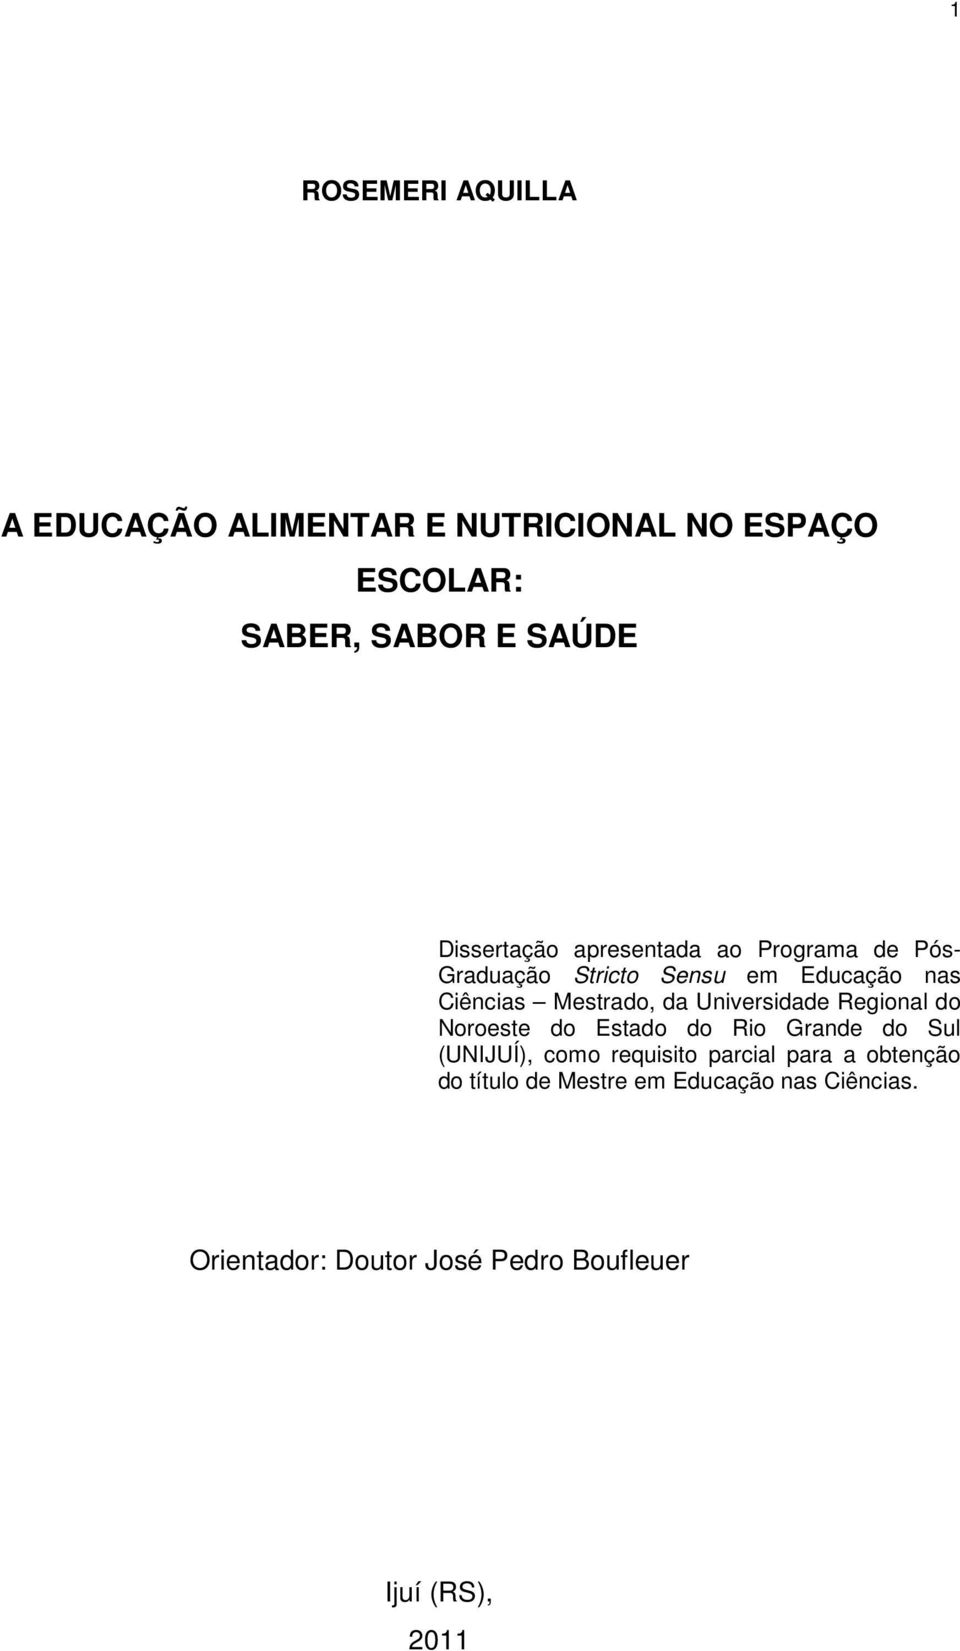 da Universidade Regional do Noroeste do Estado do Rio Grande do Sul (UNIJUÍ), como requisito parcial